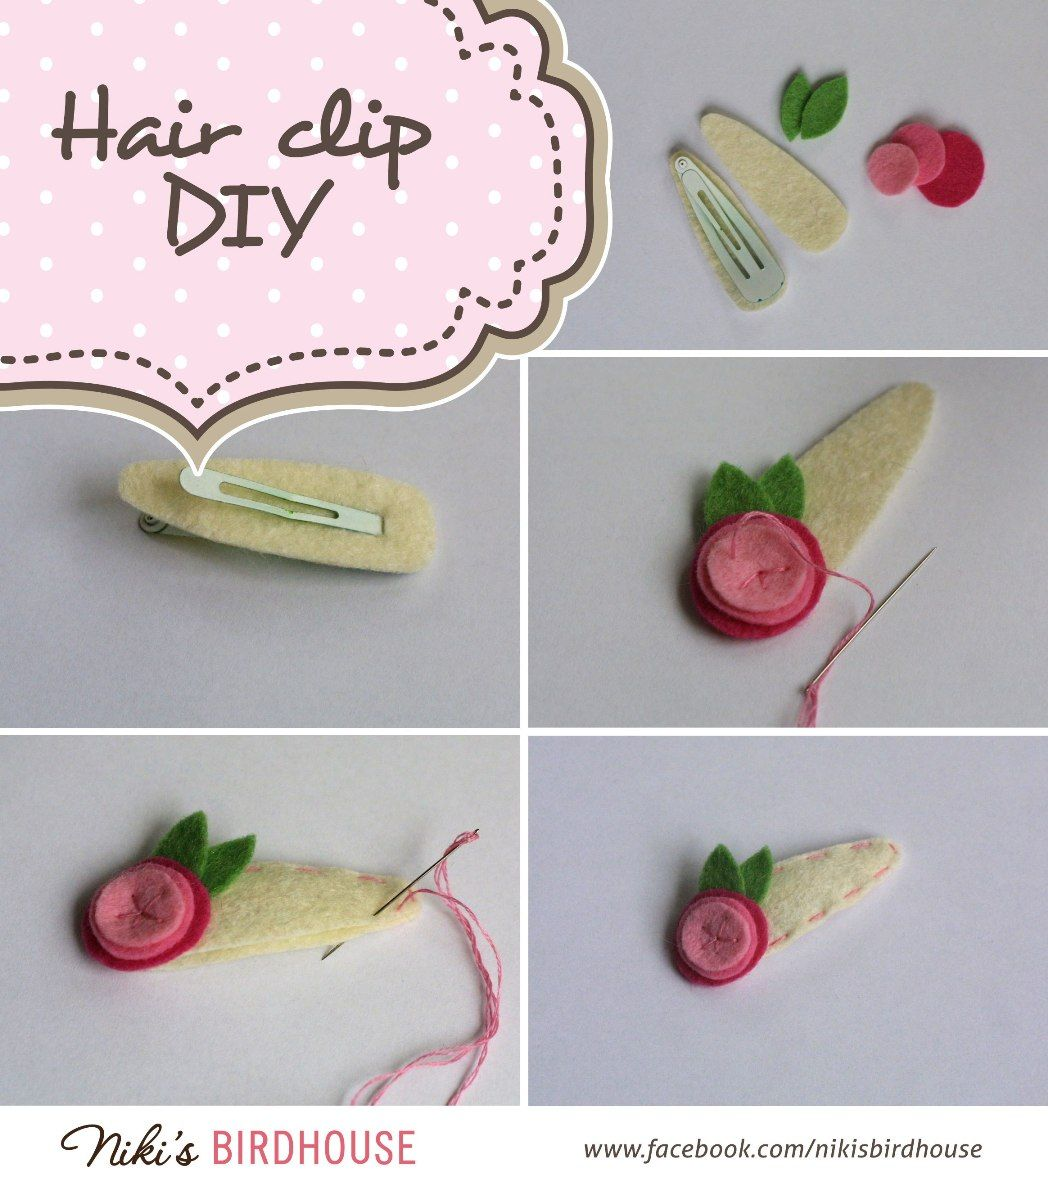 Easy Diy Felt Hair Clip Hair Clips Diy Felt Hair Accessories Felt Hair Clips